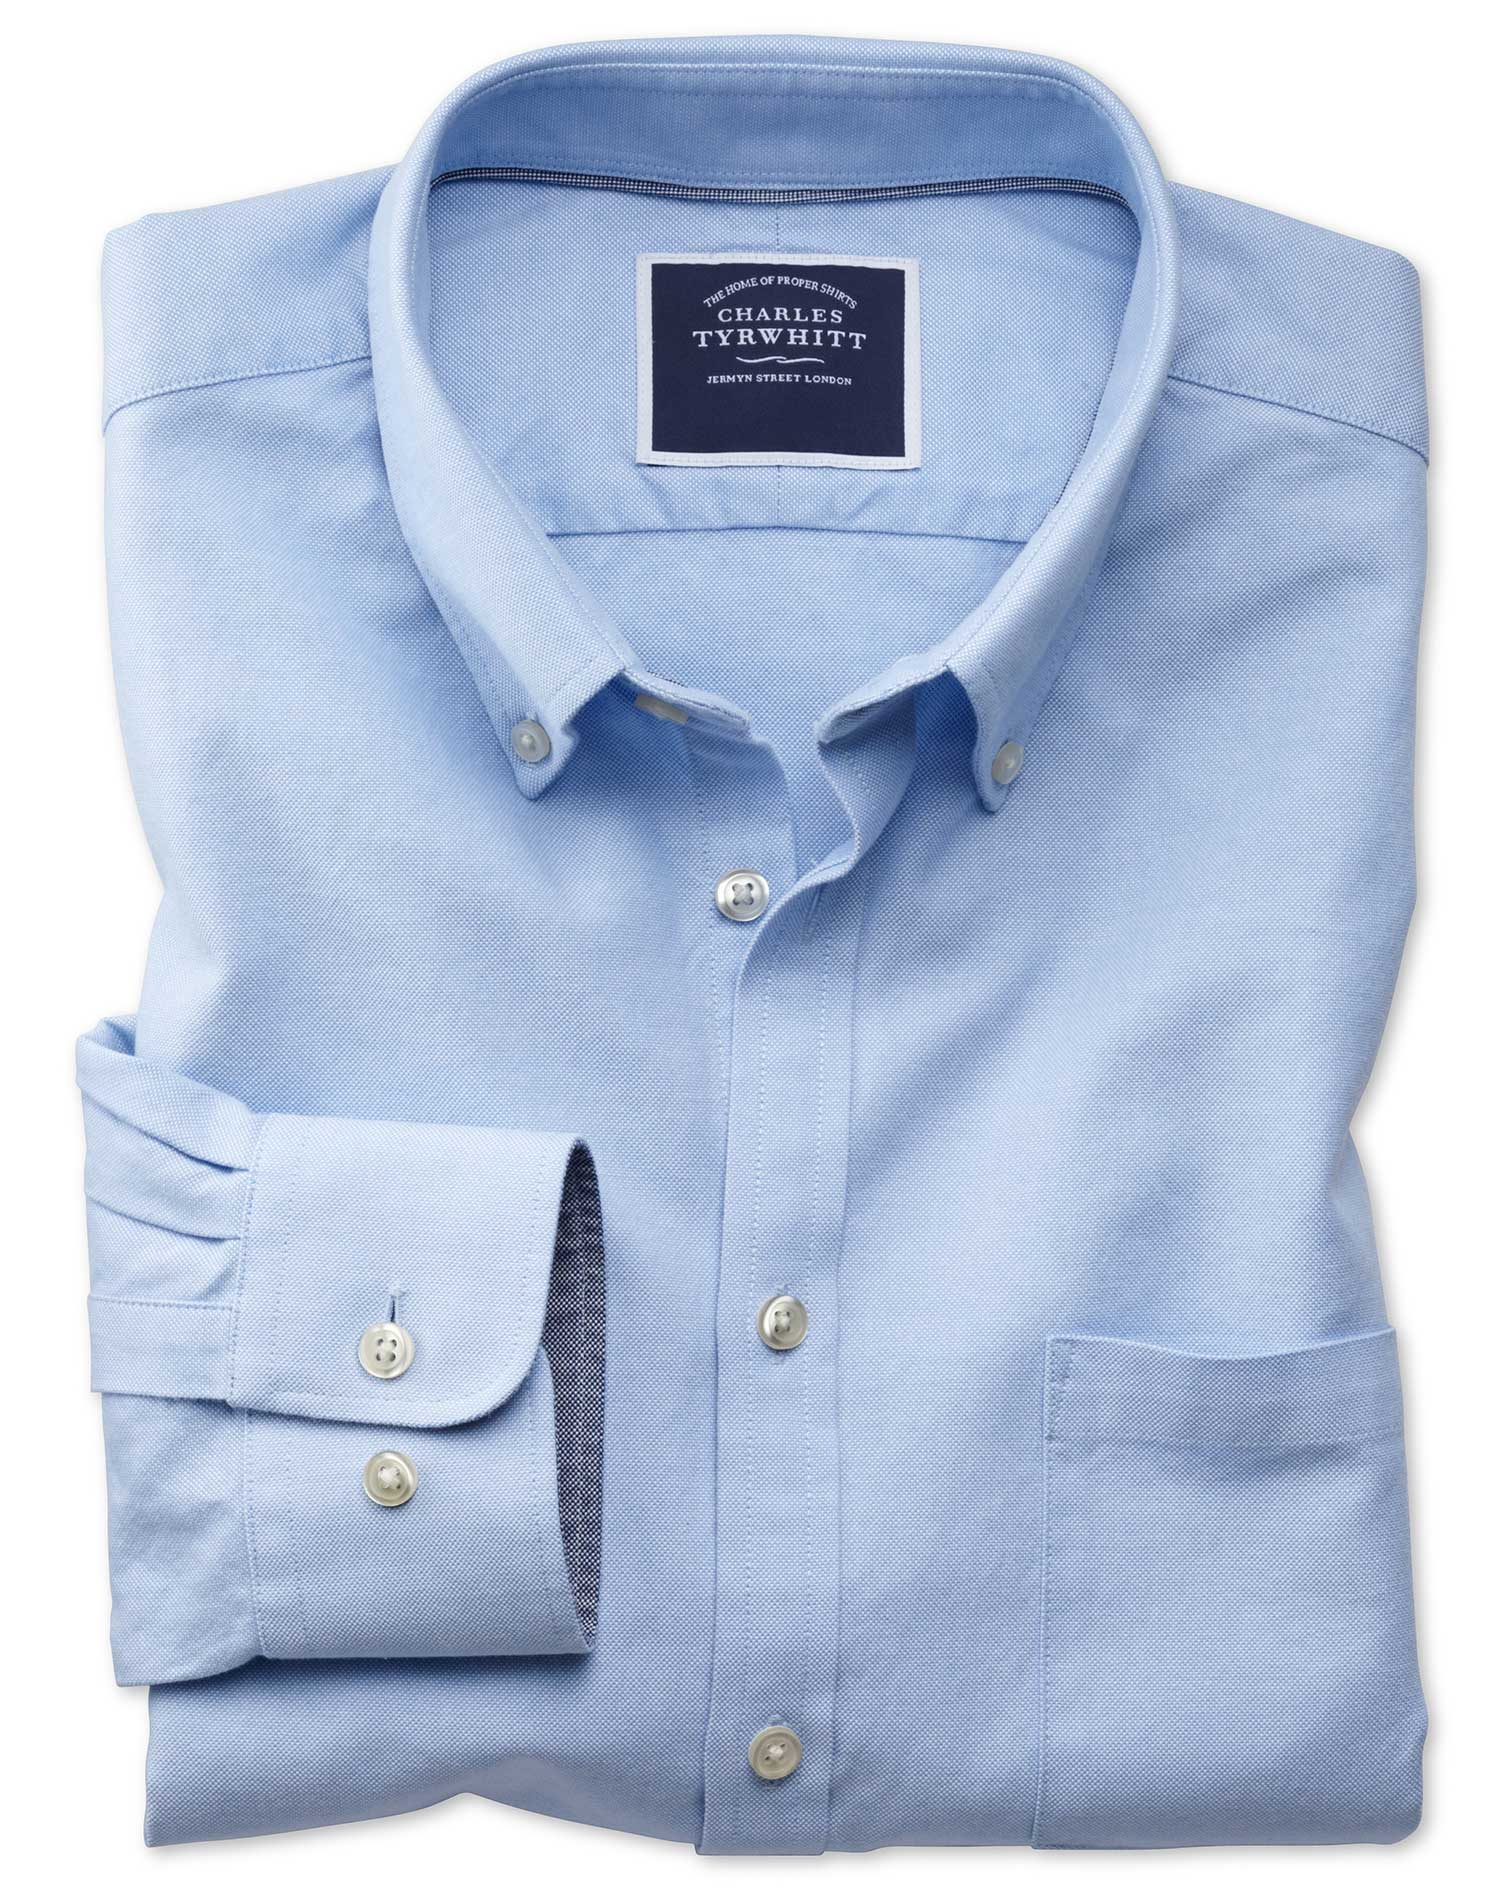 Extra Slim Fit Button-Down Washed Oxford Plain Sky Blue Cotton Shirt Single Cuff Size Small by Charl